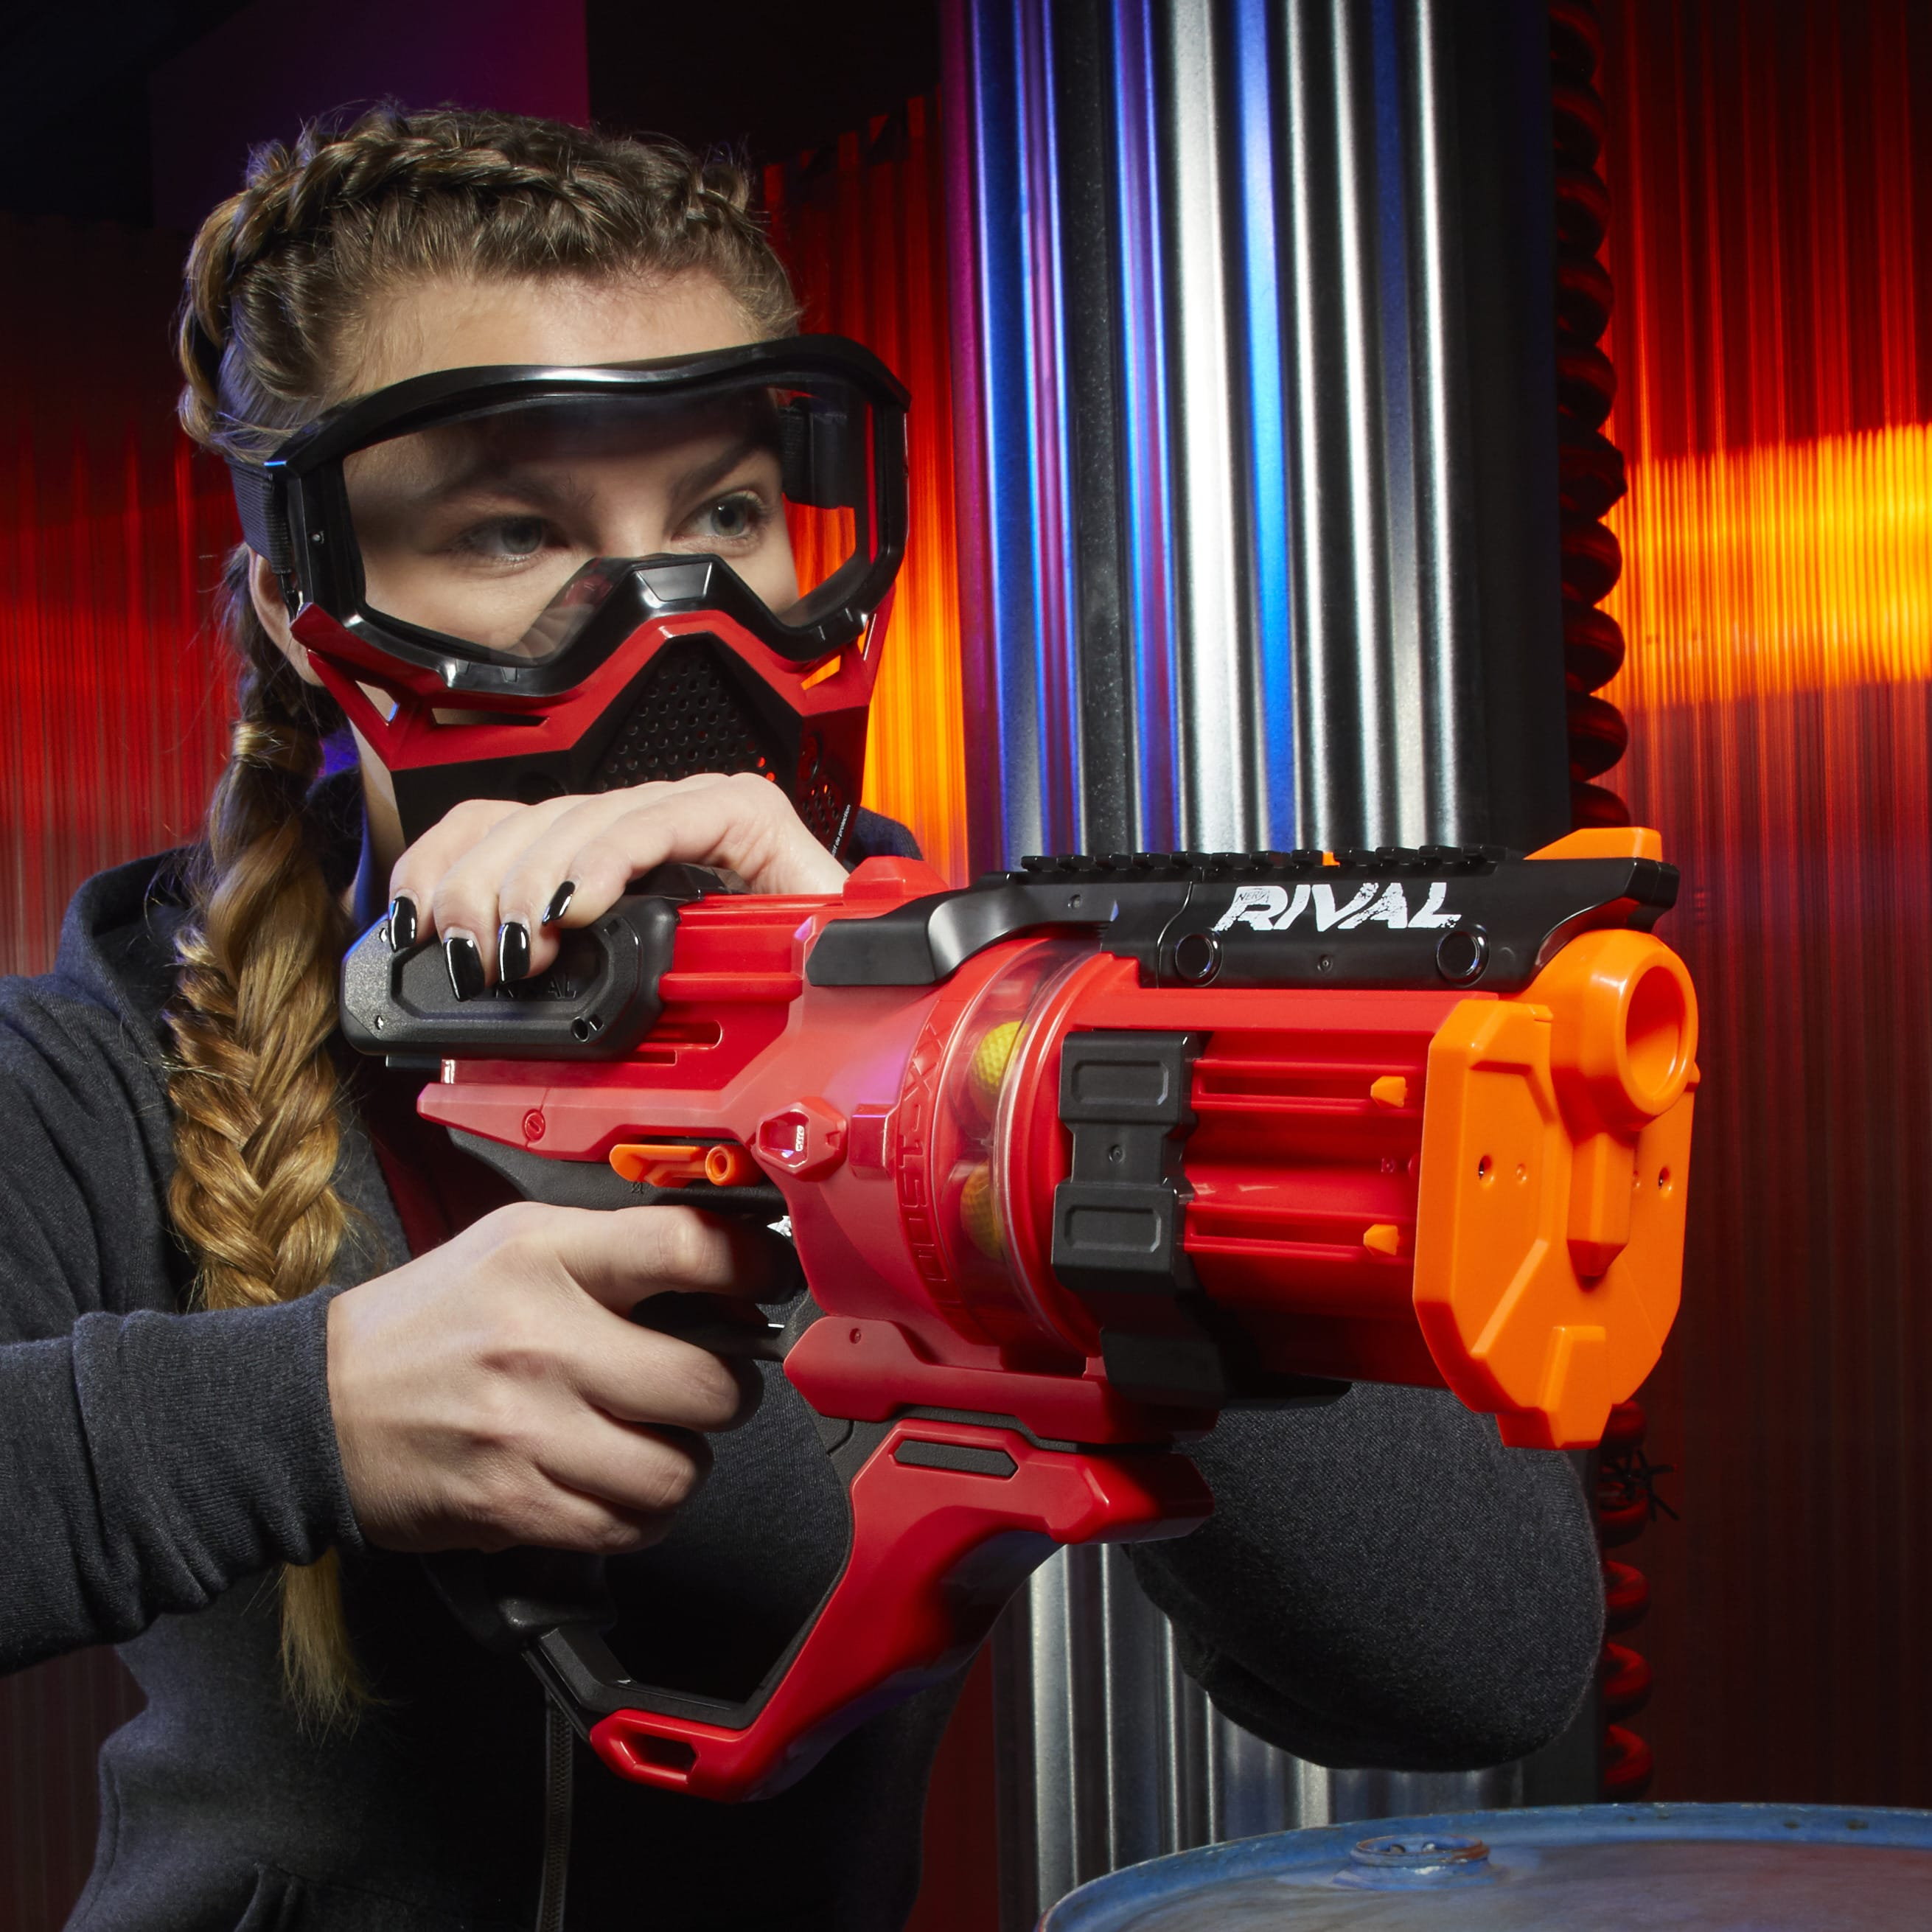 E6638 Nerf Rival Roundhouse red lifestyle